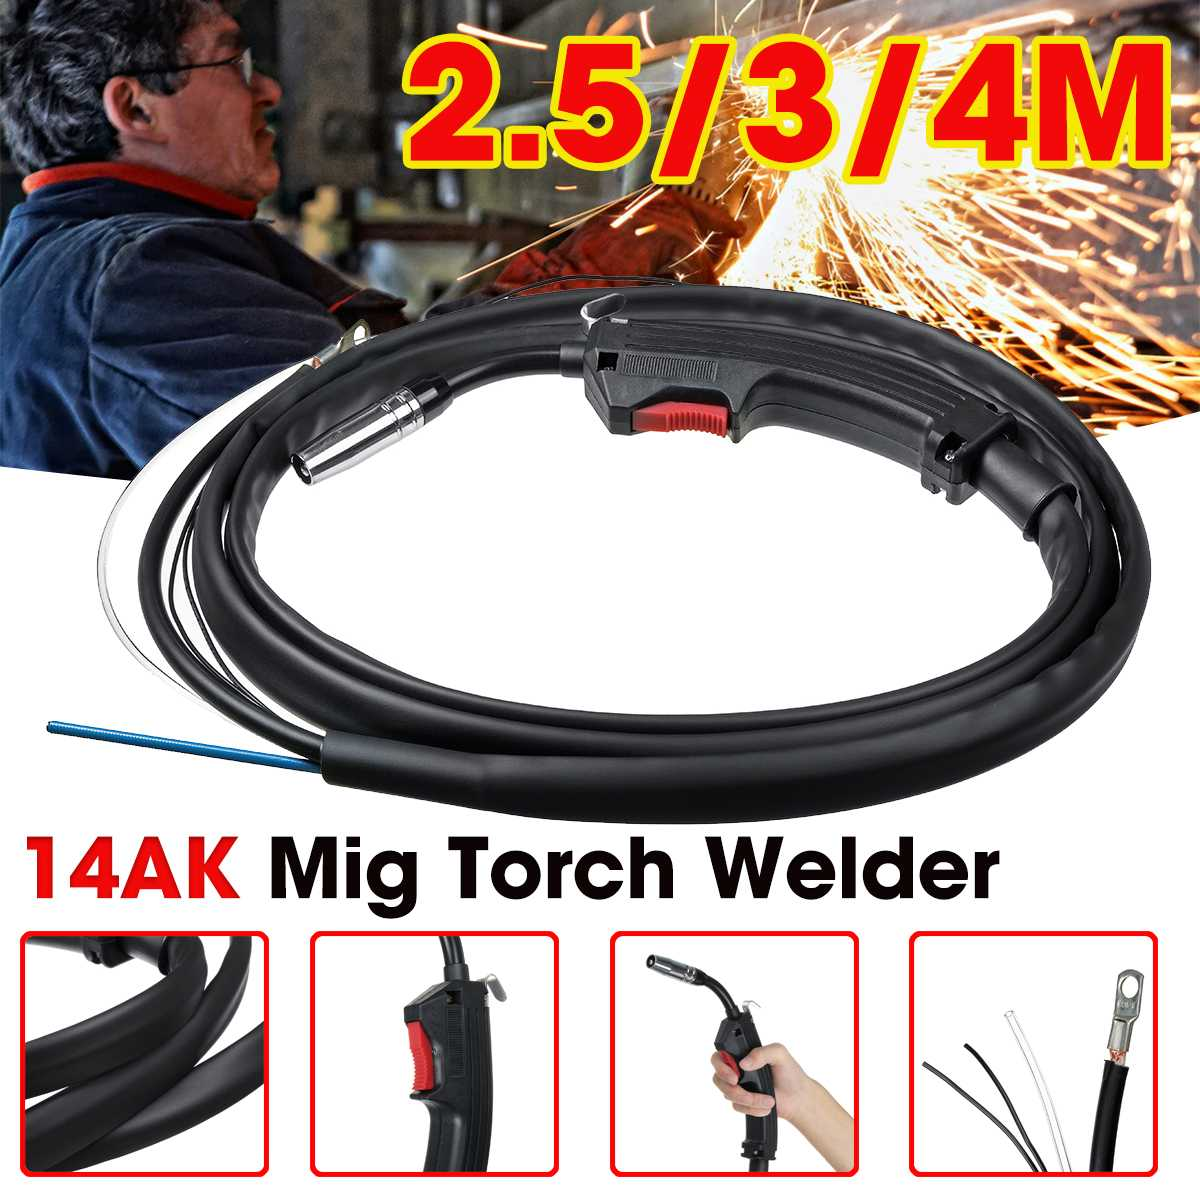 14AK Gas-electric Welding Gun Torch Electric Welder Complete Replacement Spare Part For MIG MAG Welding Machine